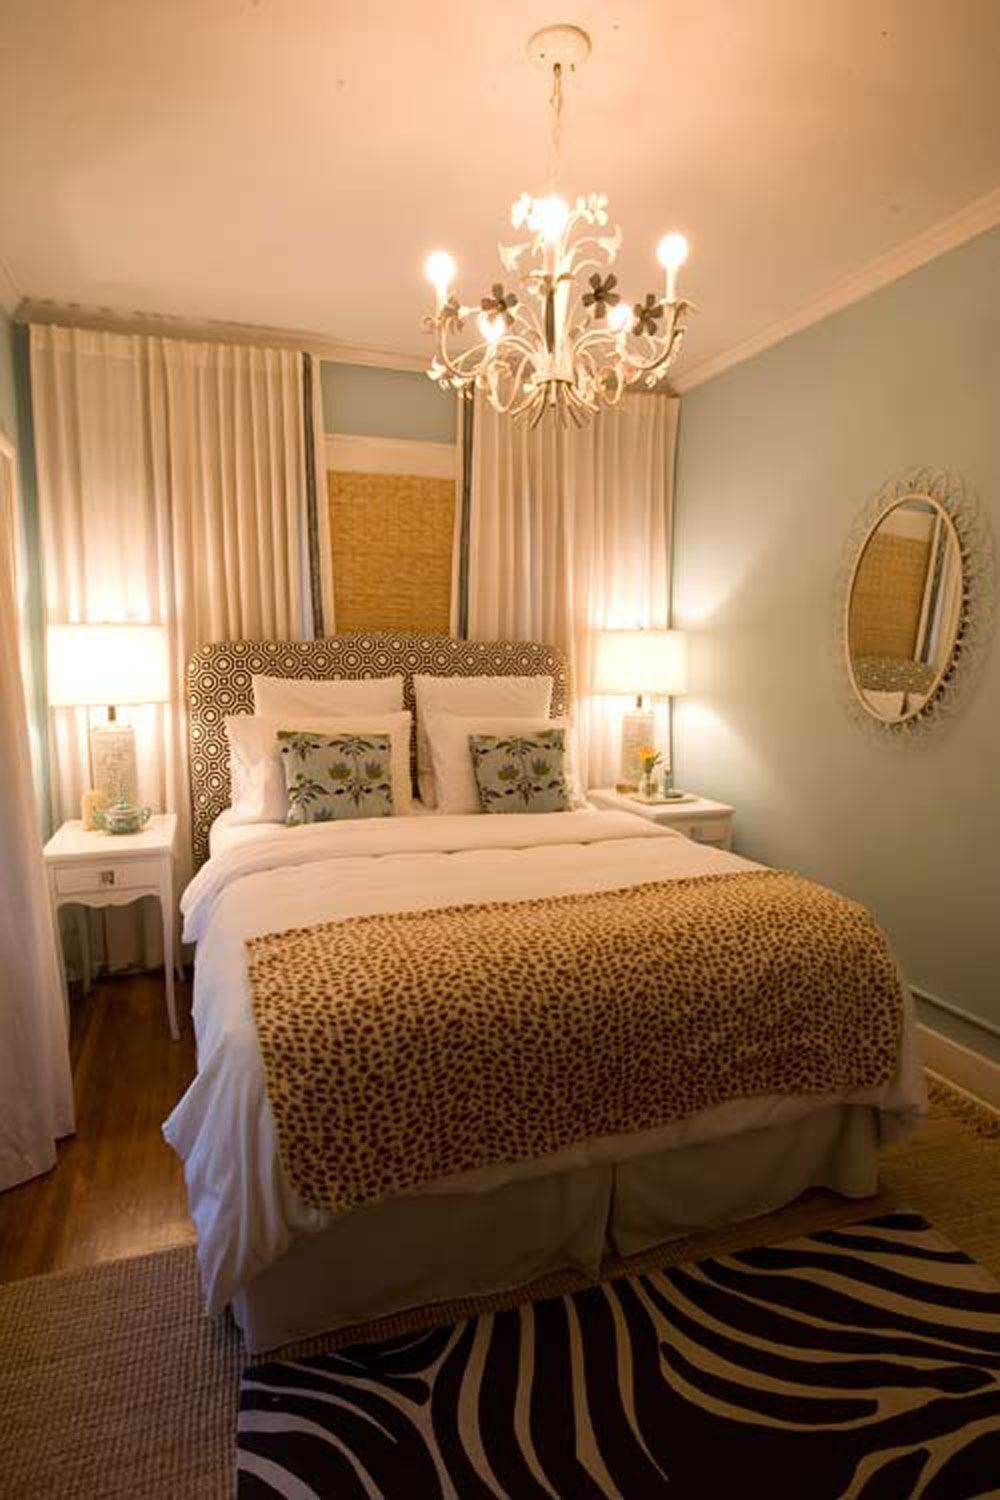 Design Tips For Decorating A Small Bedroom On A Budget in ...